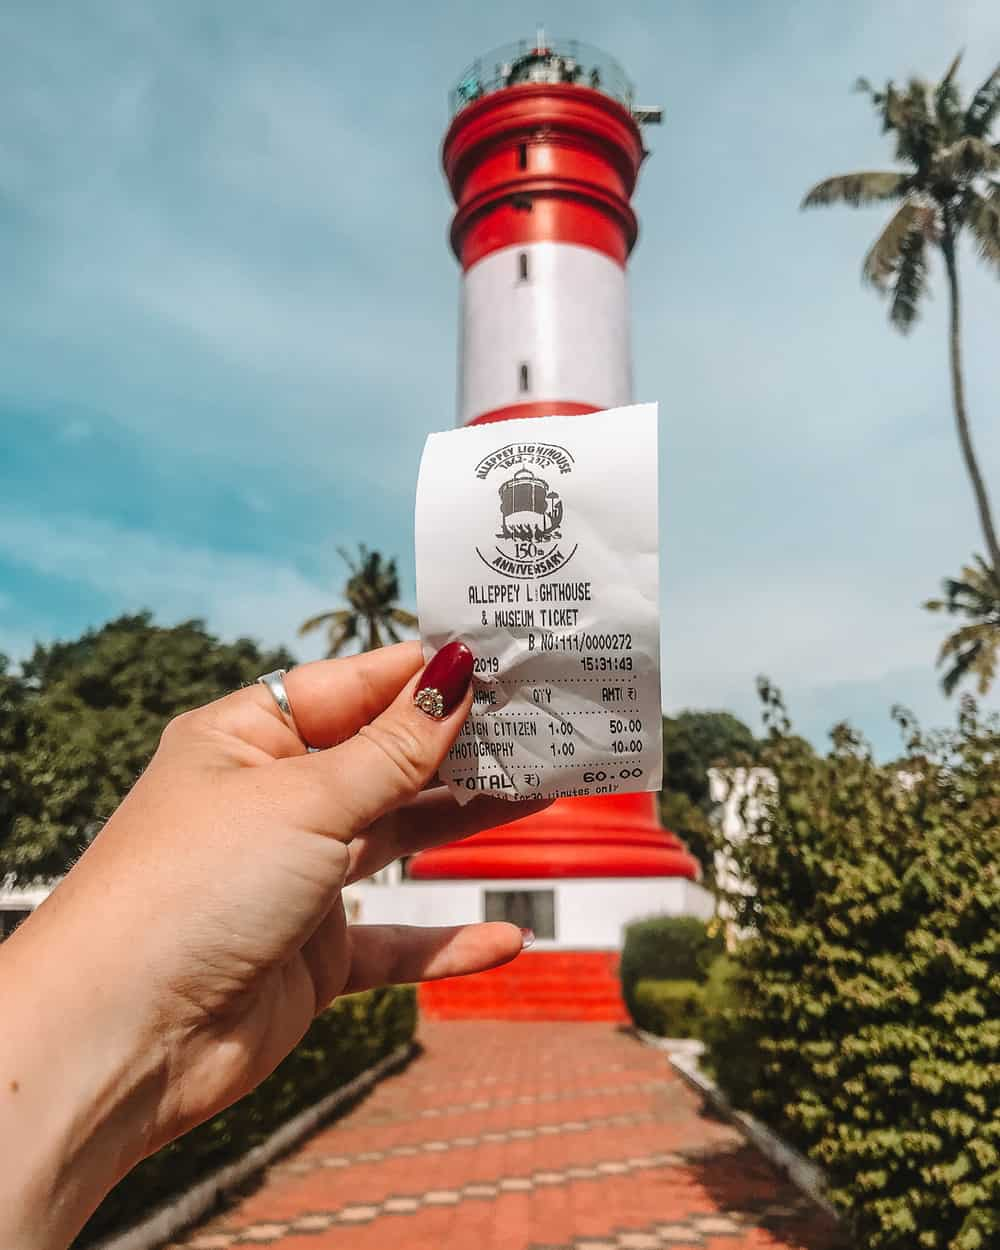 Alappuzha lighthouse ticket price